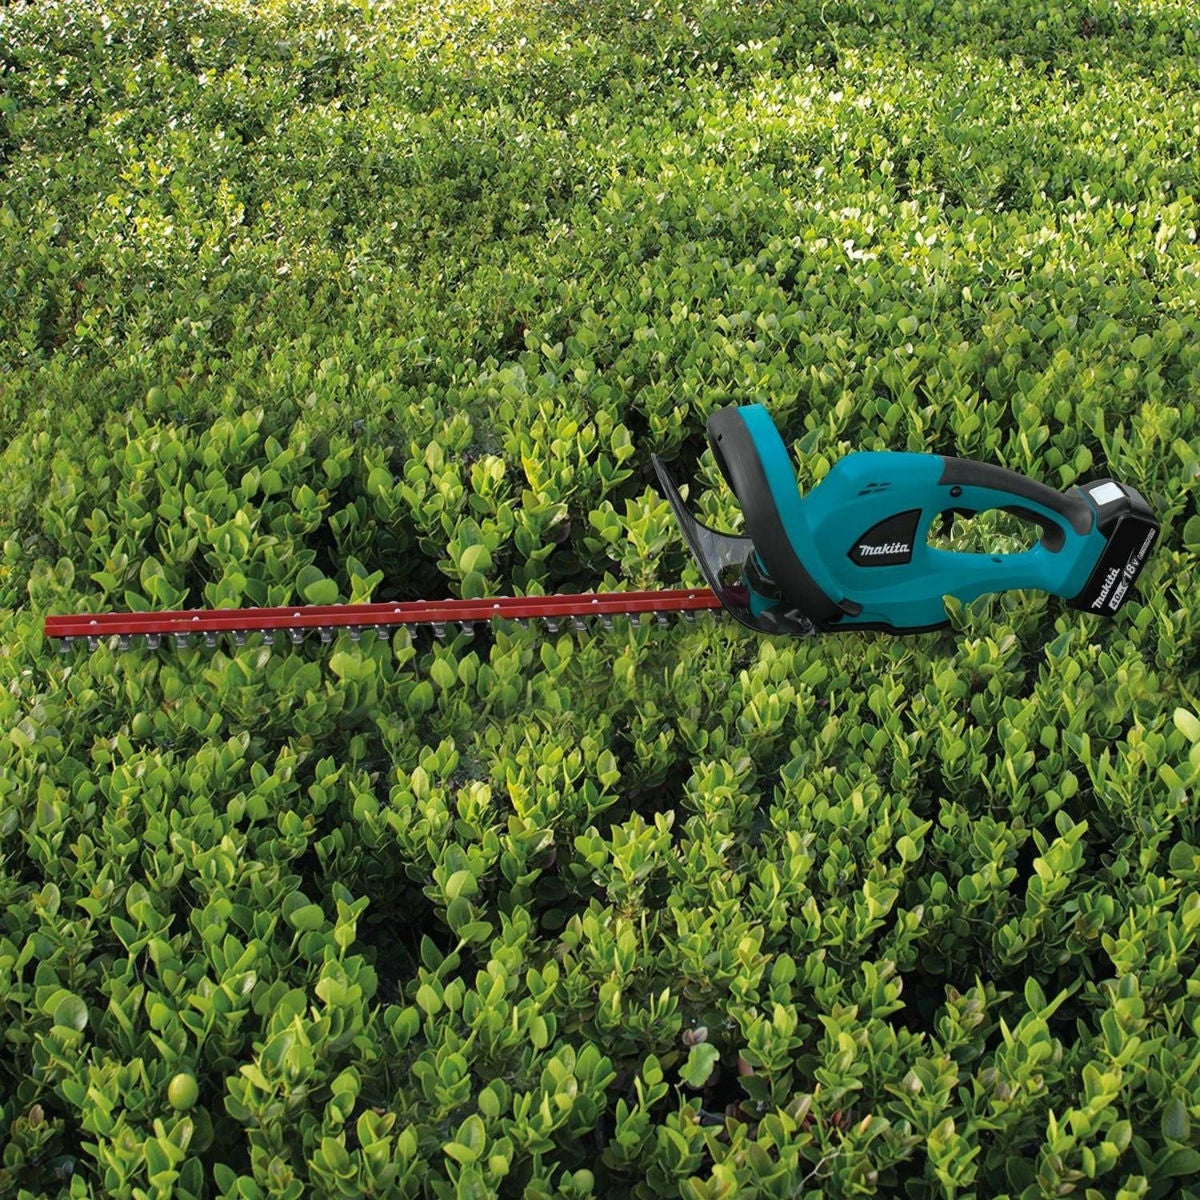 Best Hedge Trimmer: Makita